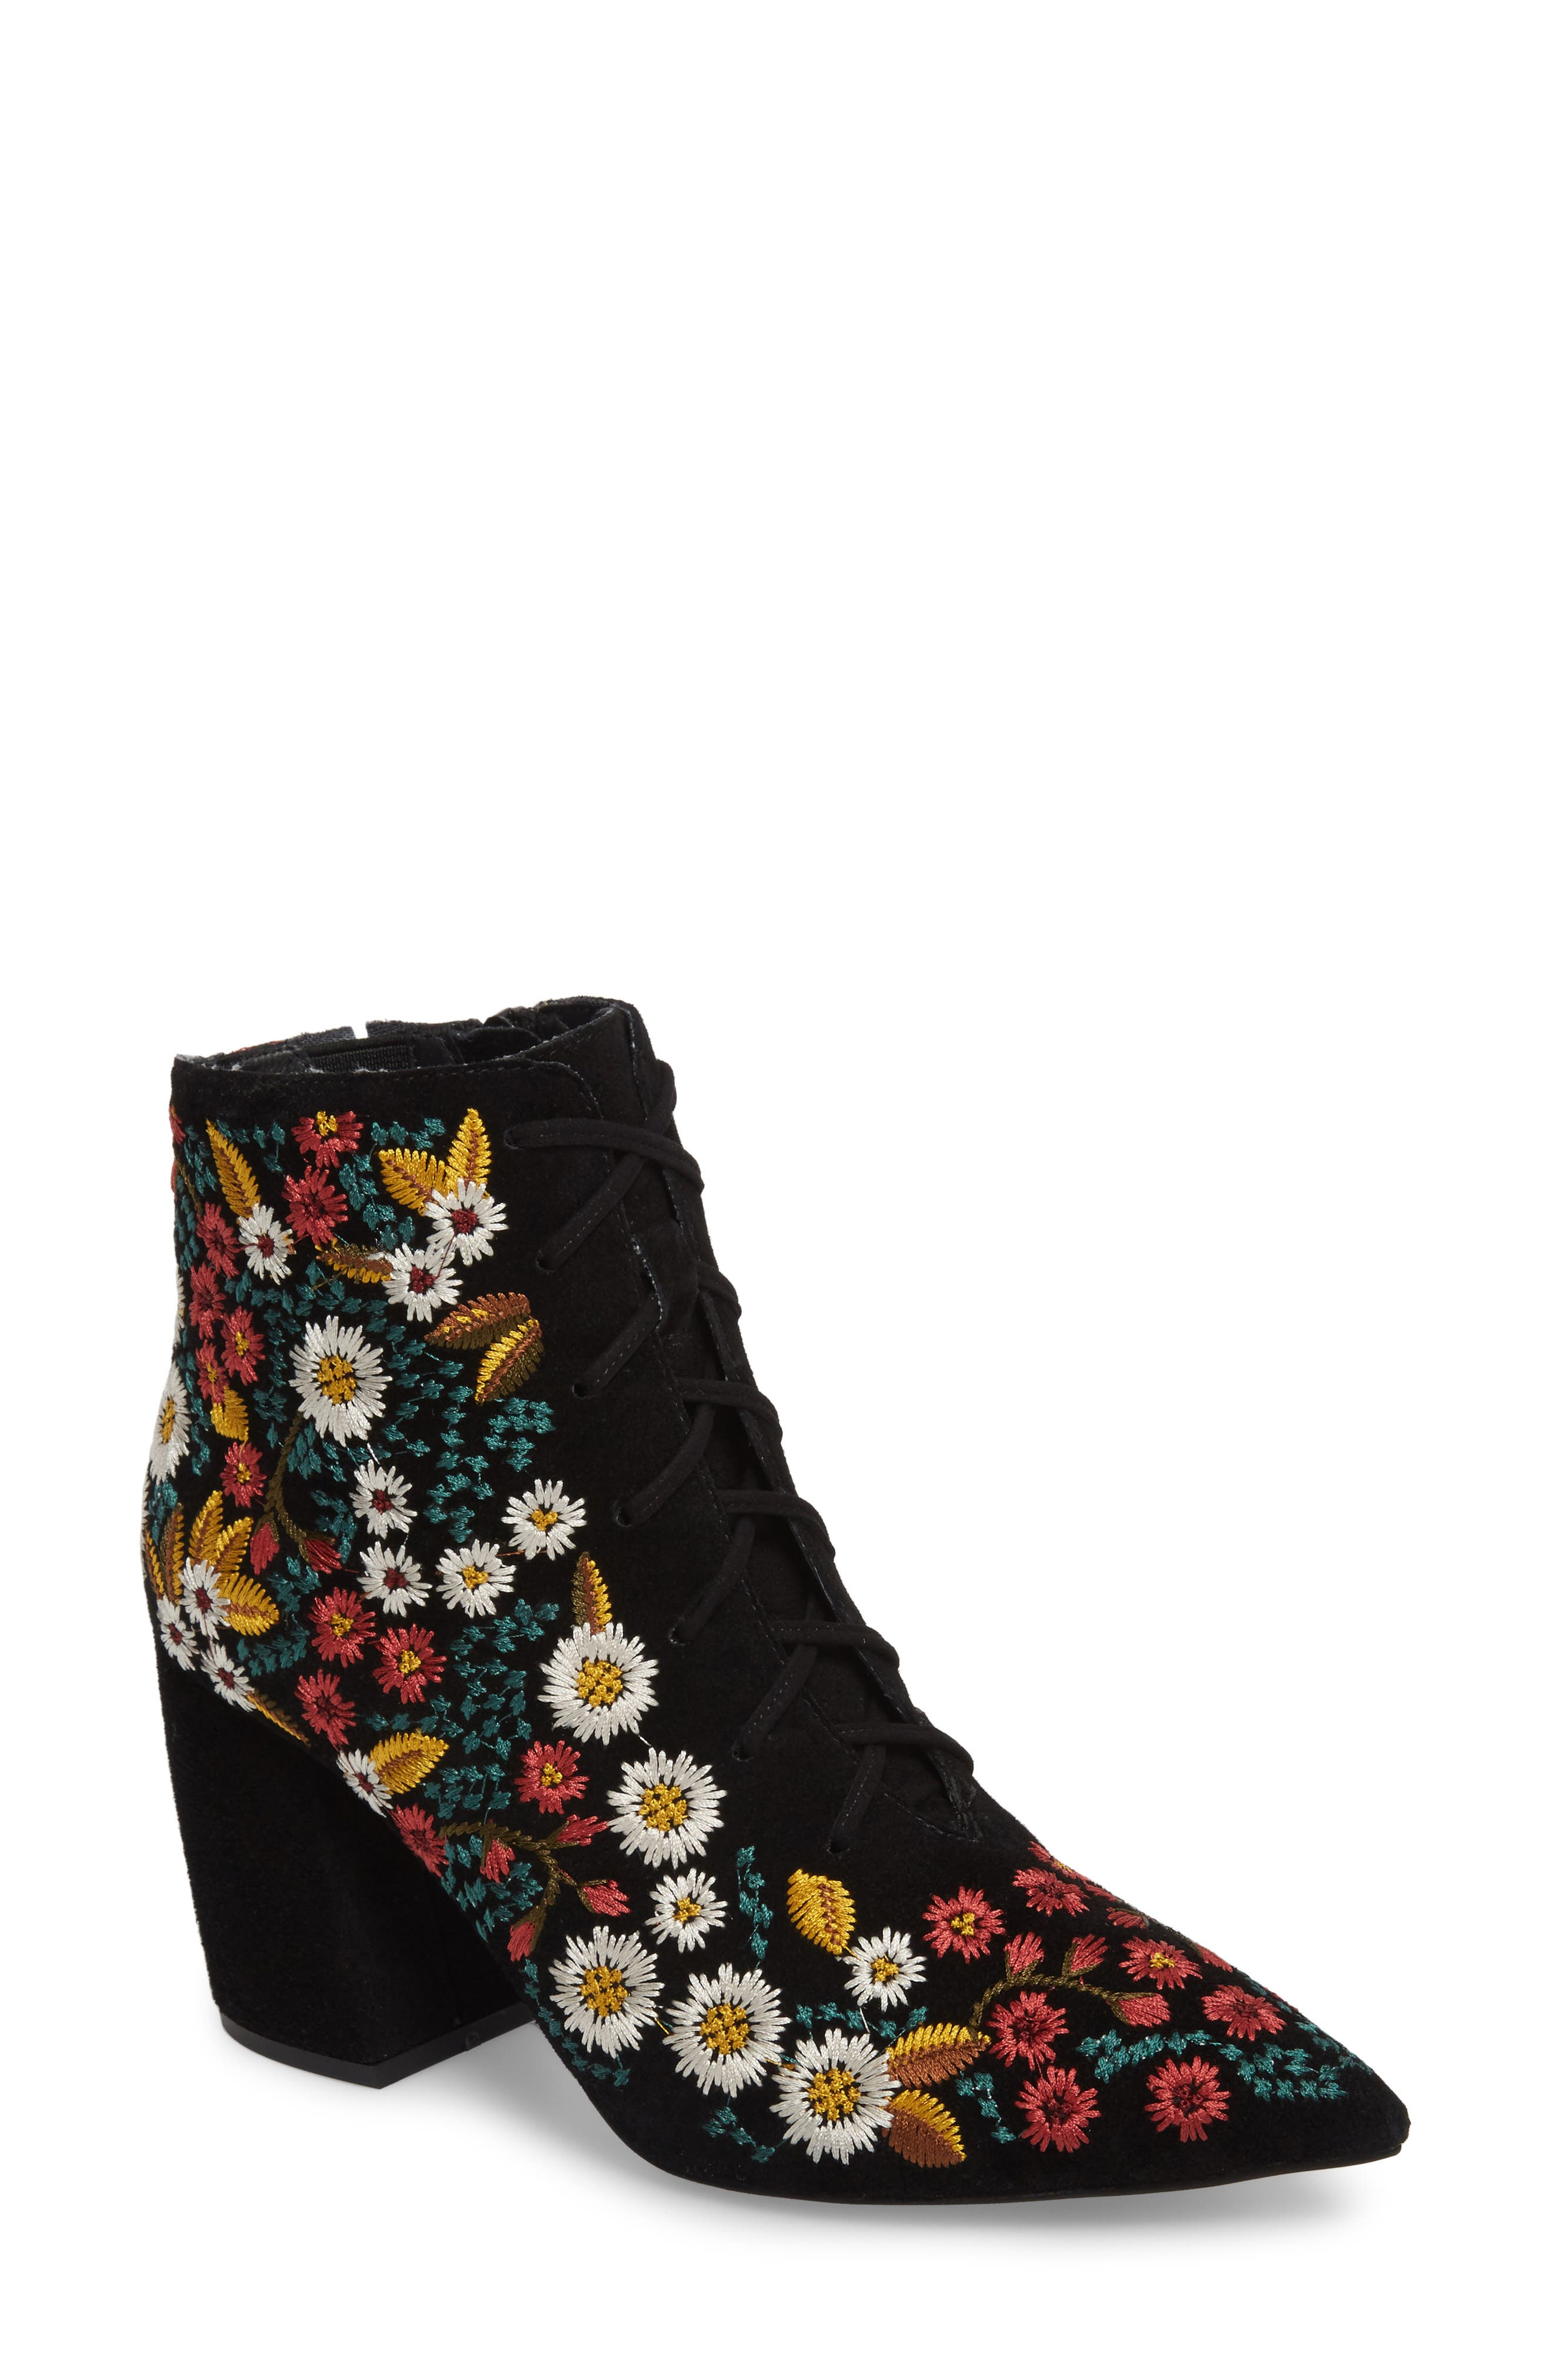 Finito Lace-Up Bootie,                             Main thumbnail 1, color,                             009